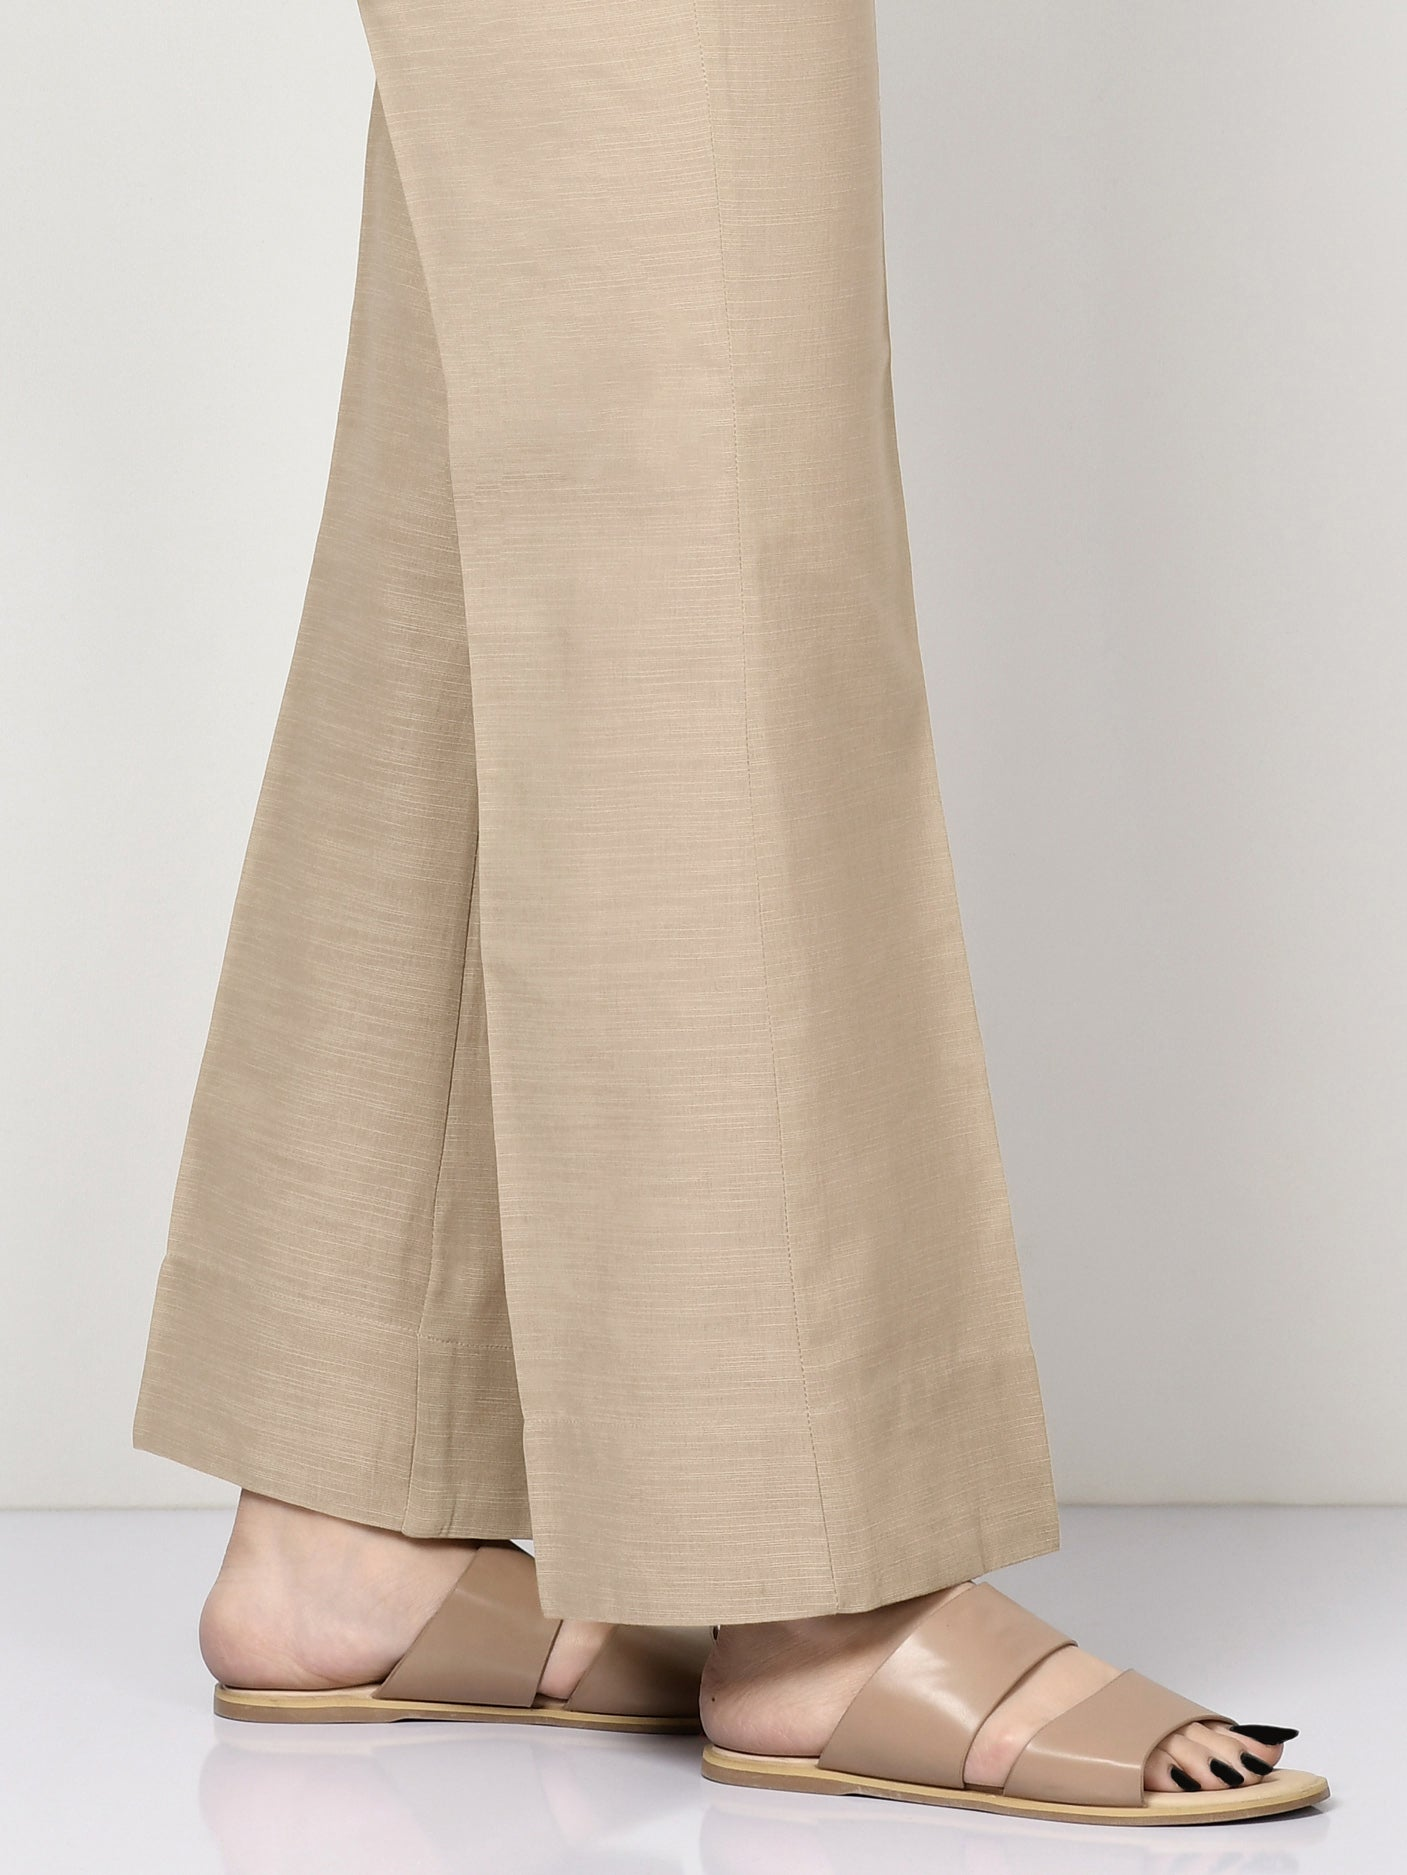 Limelight Online Unstitched Winter Trouser - Off White U1019-LSF-OWH